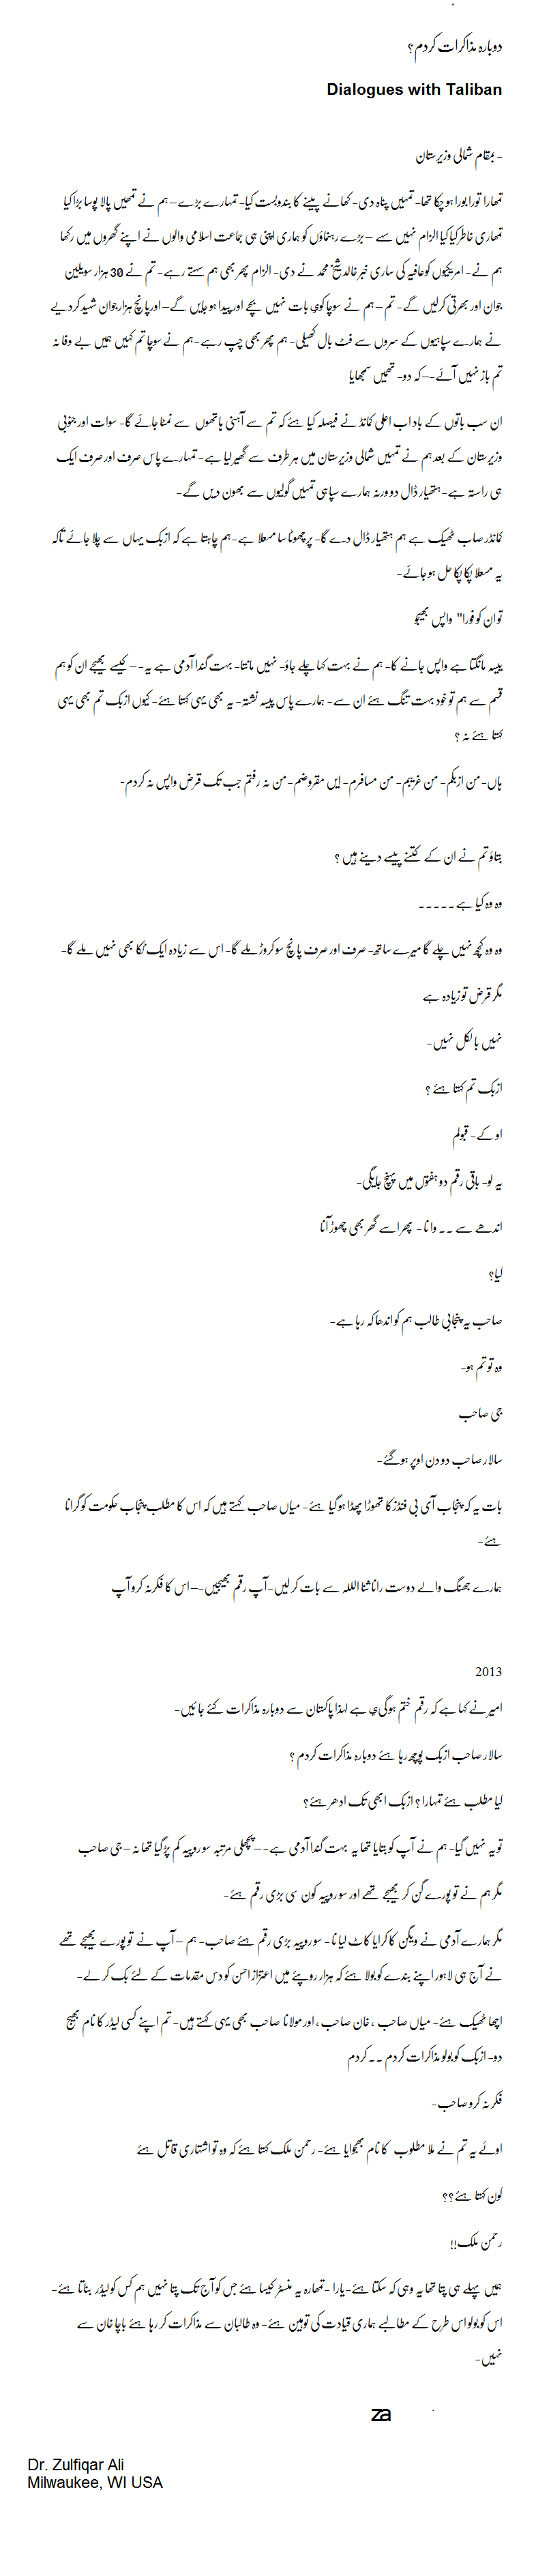 dialogues with Taliban